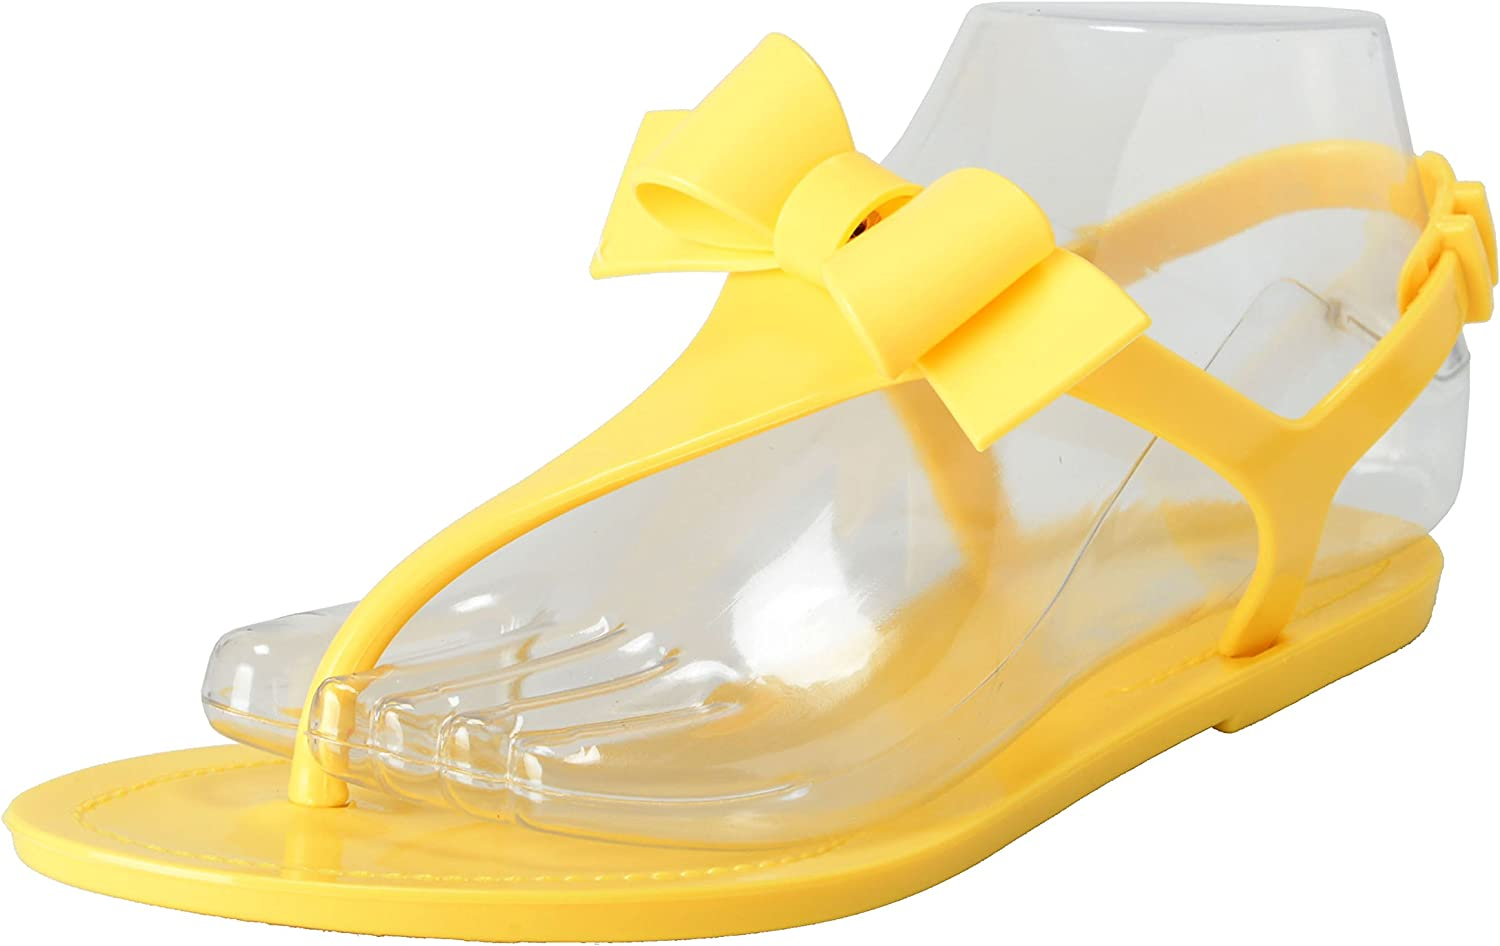 Red Valentino Women's Yellow Rubber Strappy Sandals shoes